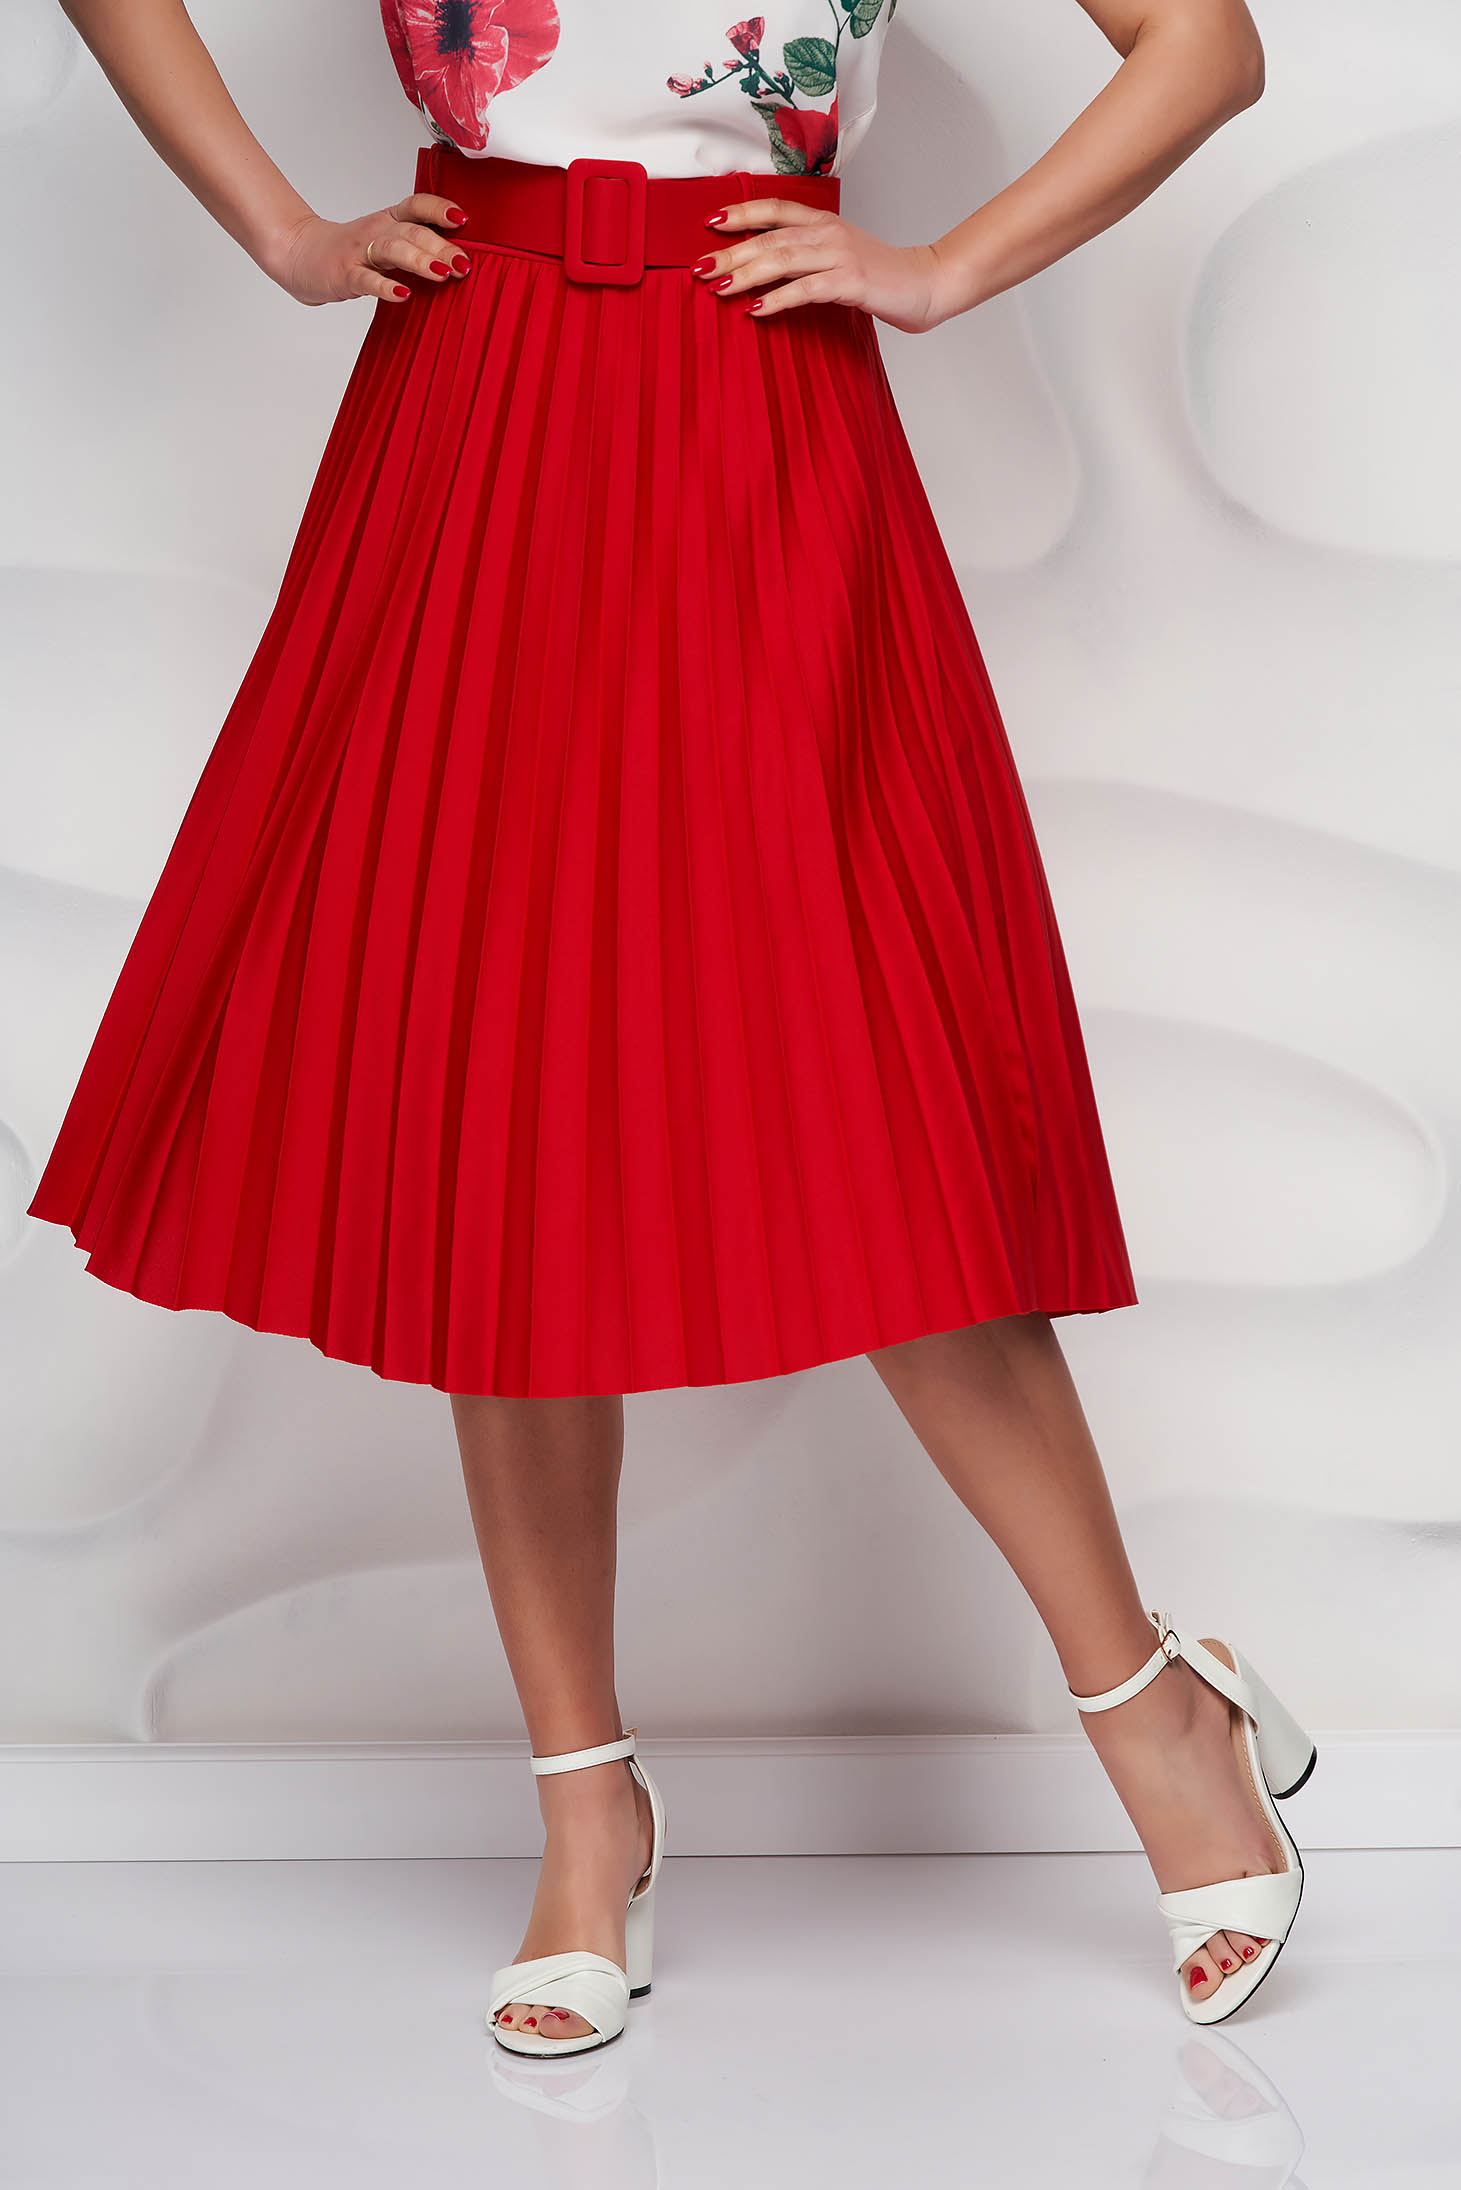 Red skirt cloche accessorized with belt slightly elastic fabric folded up